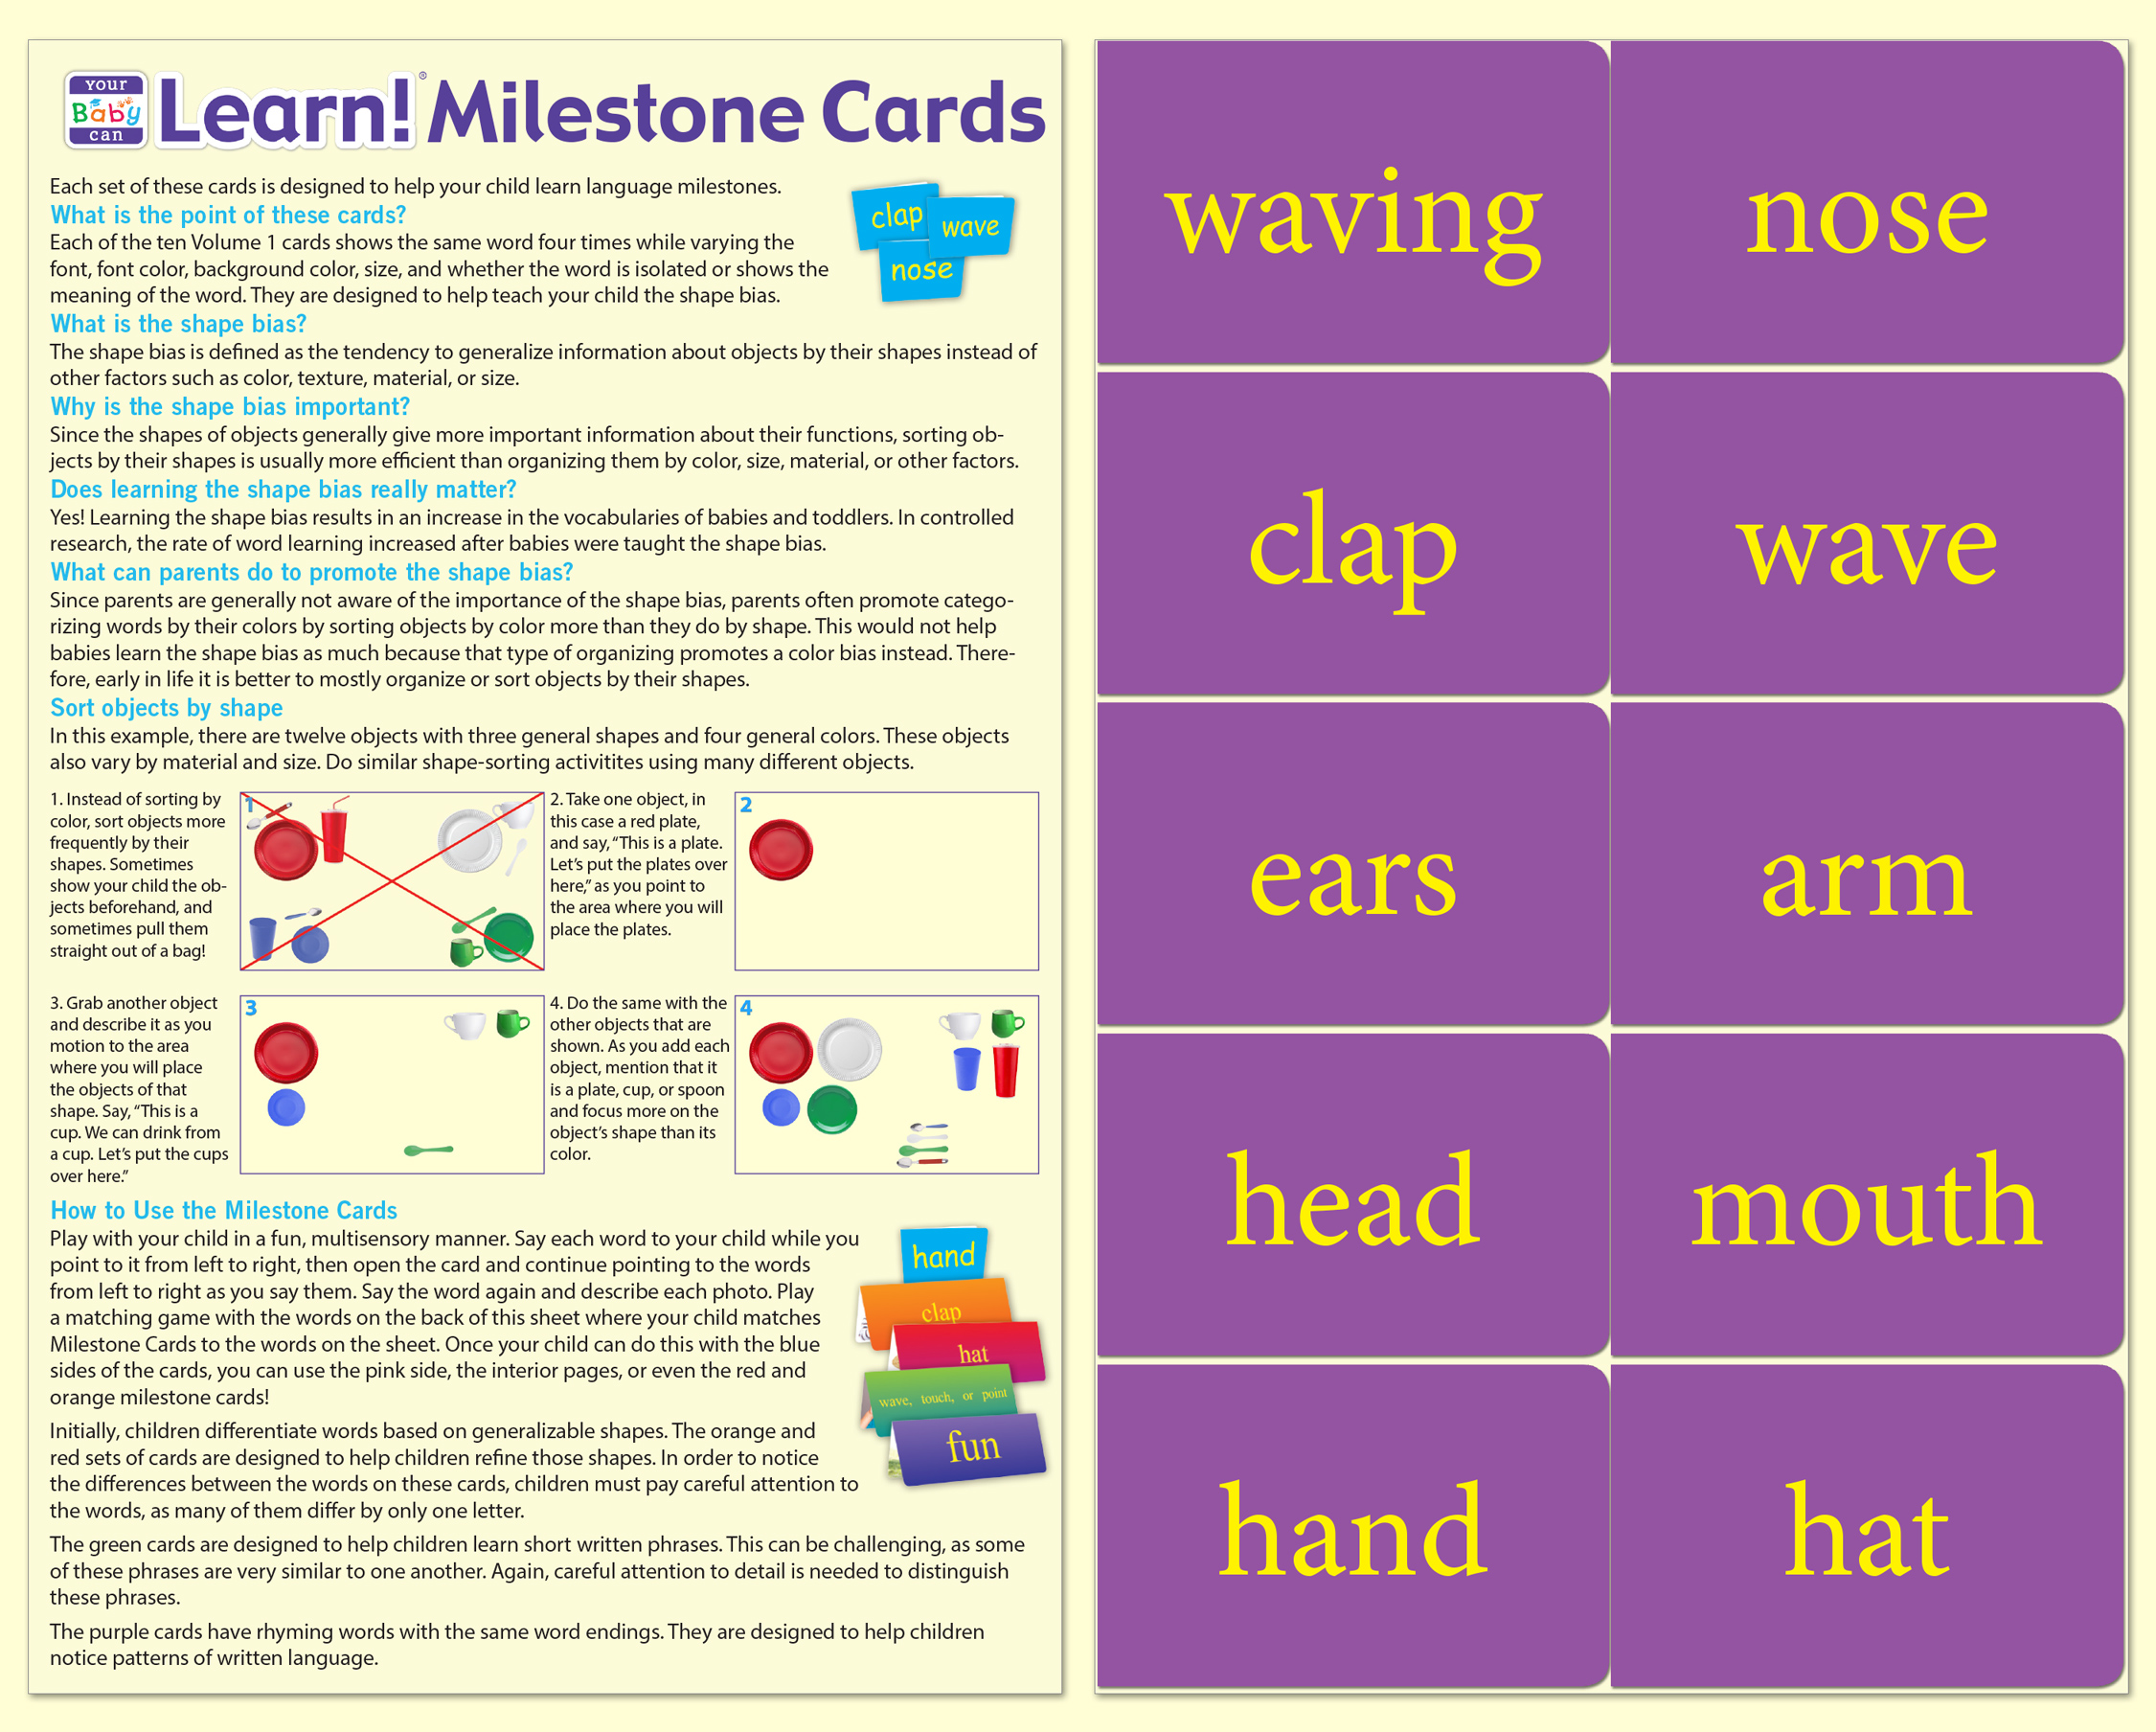 Click on this image to see the PDF of Lift-the-Flap Card Instructions